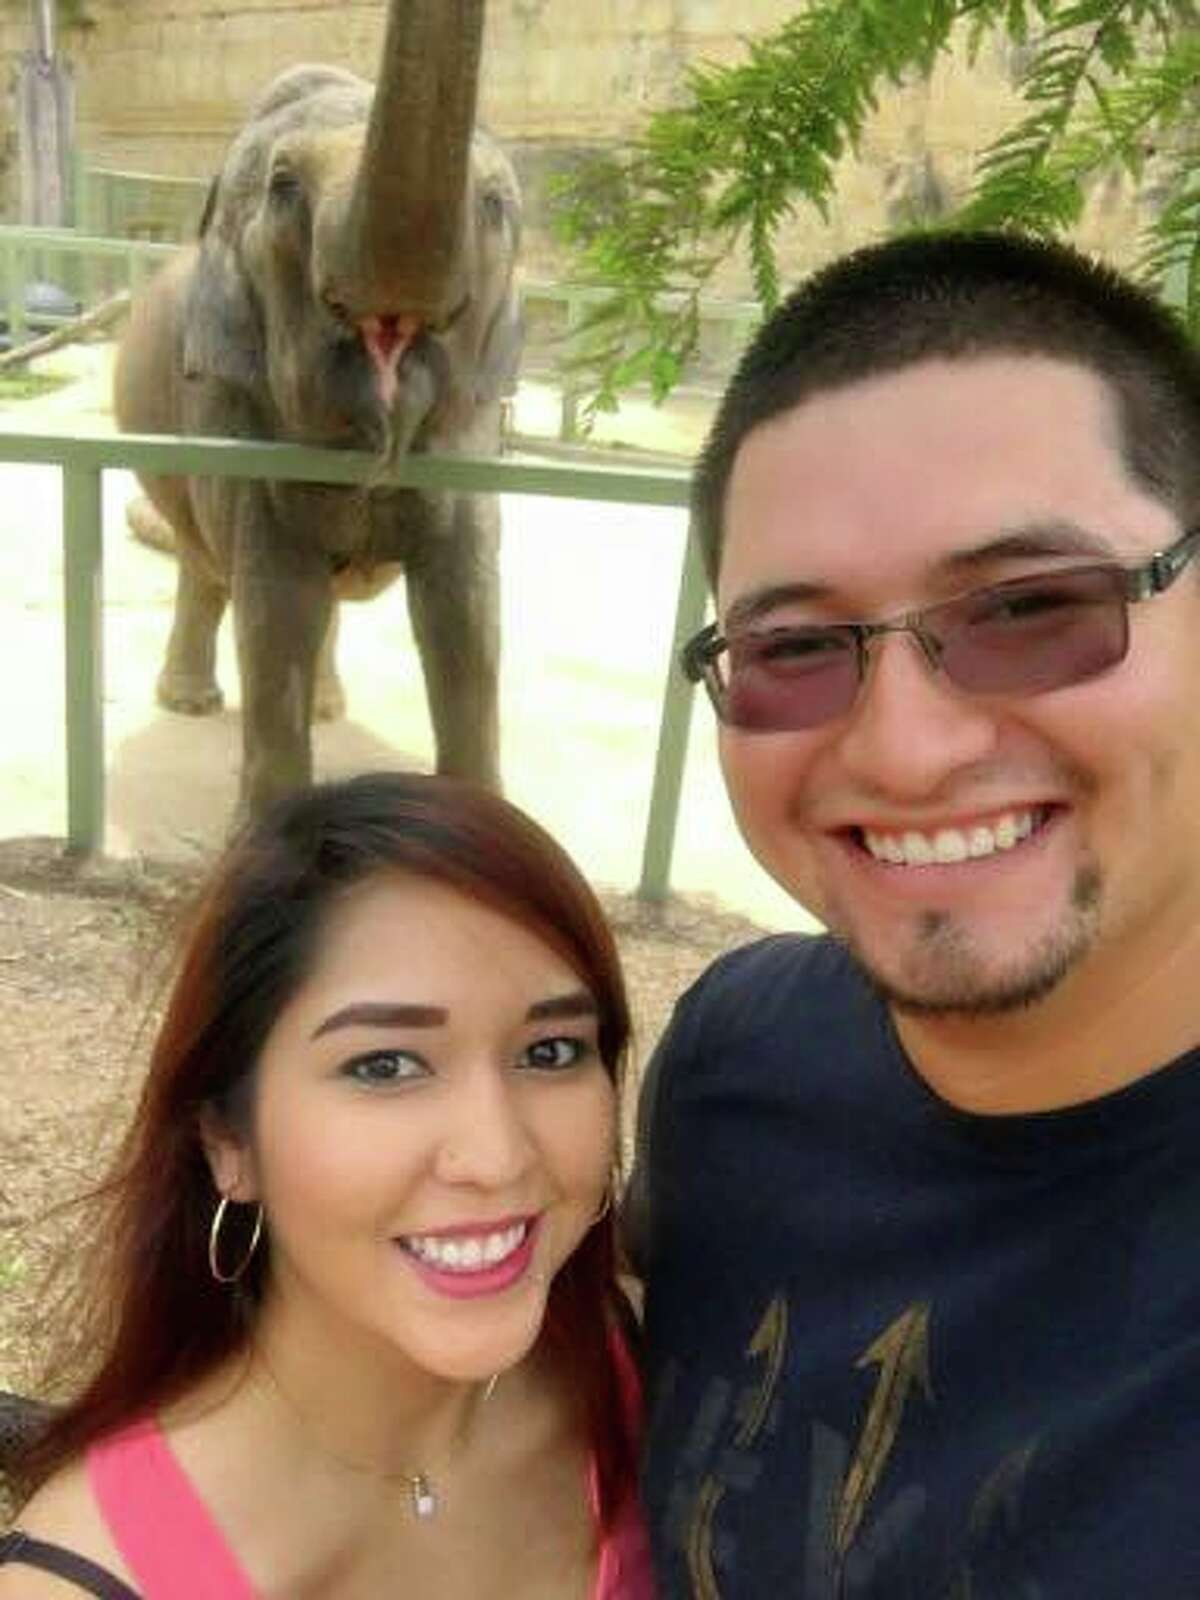 San Antonio Zoo Director Tim Morrow shared a photo guests took on the grounds that featured a surprise guest.